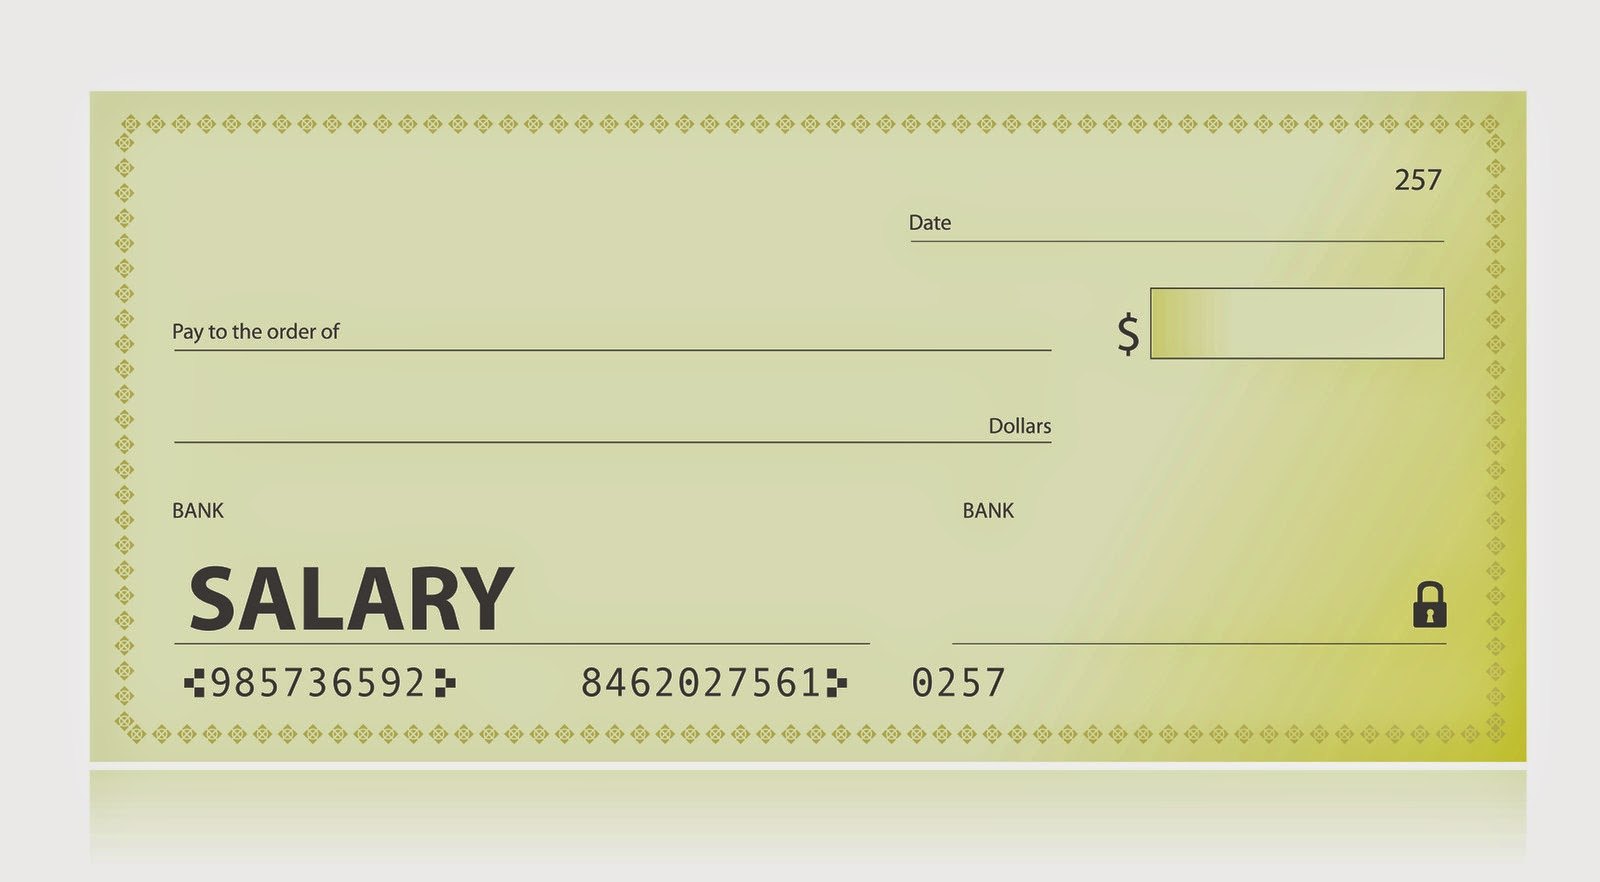 Our Last Salary Survey Was Published In 2011 And We Are Currently Collecting Data For 2014 Please Sign Up The Soon